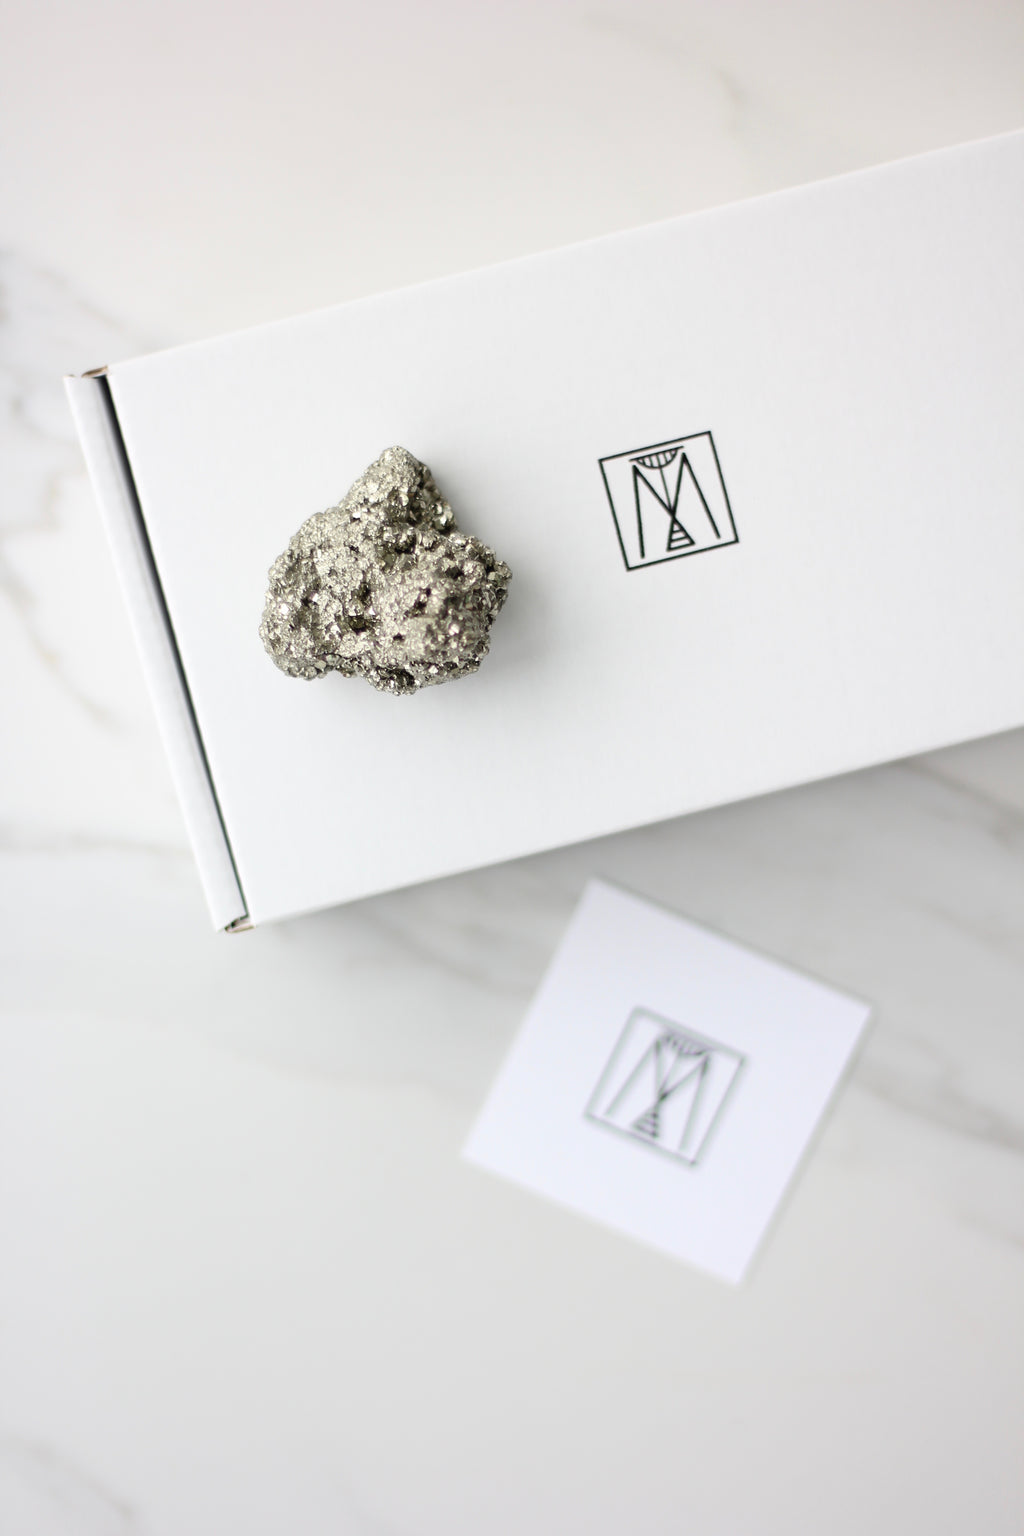 TM Pyrite Kit